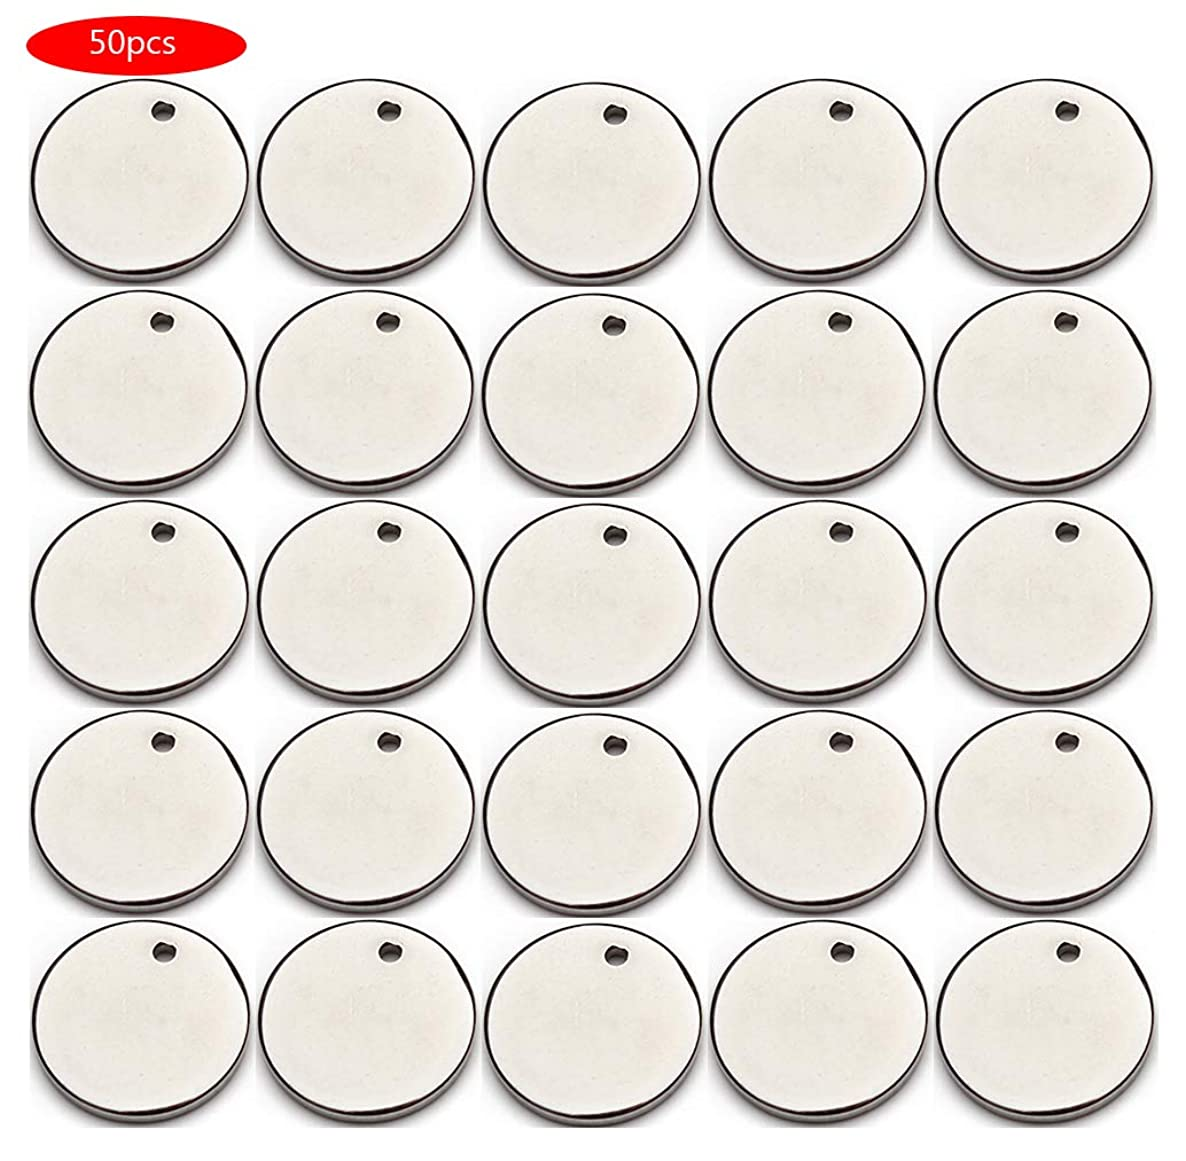 Forise 50pcs Stainless Steel Blank Round Charms Tag Pendants Fits for DIY Bracelet Earring Pendant (silver-20mm)